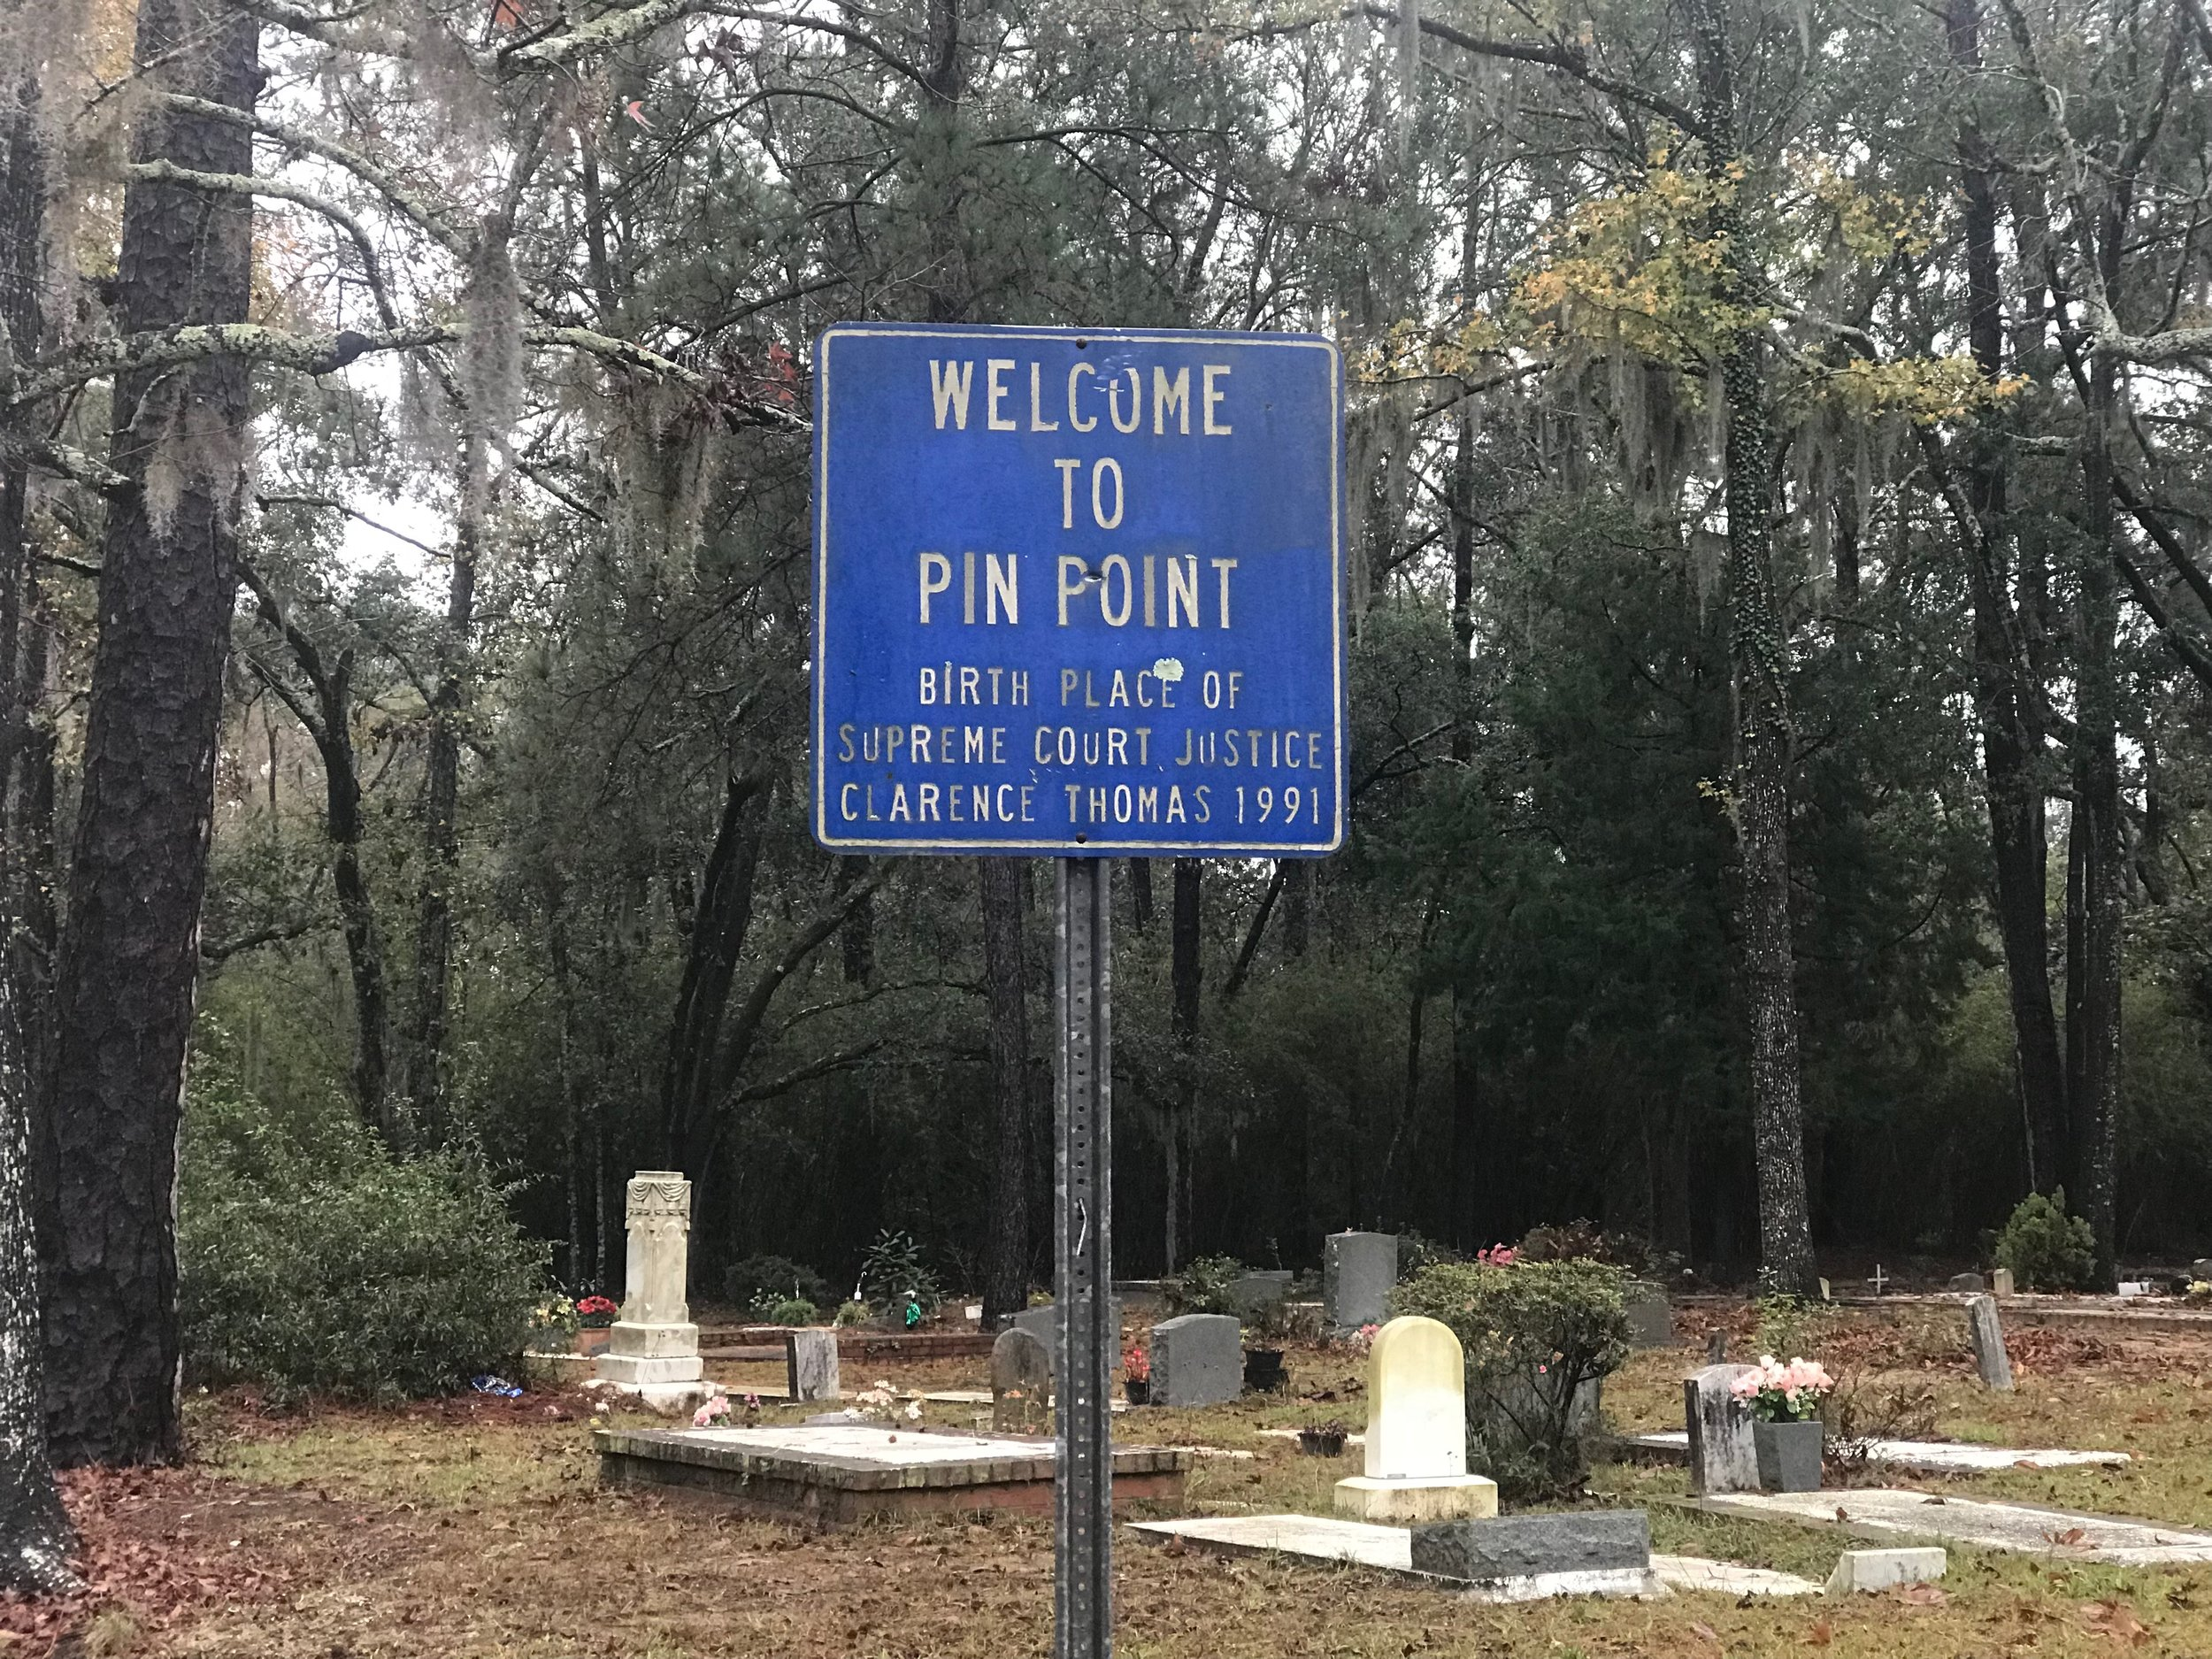 A sign near the cemetery at Sweetfield of Eden Baptist Church - formerly Hinder Me Not Baptist Church - welcomes visitors to Pin Point.